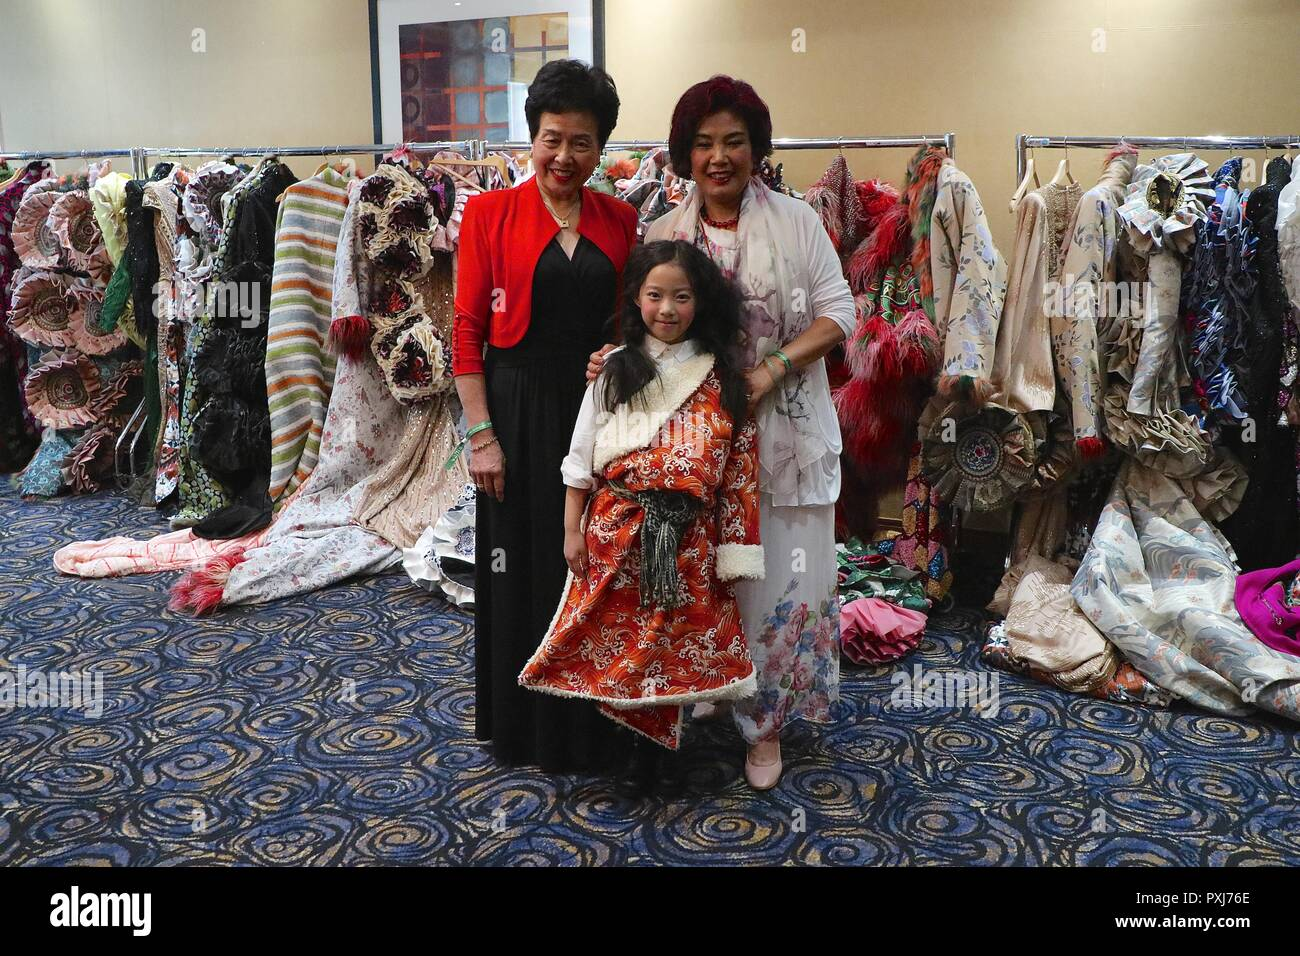 She Guang Hu Haute Couture Show in Natural History 2018 Stock Photo